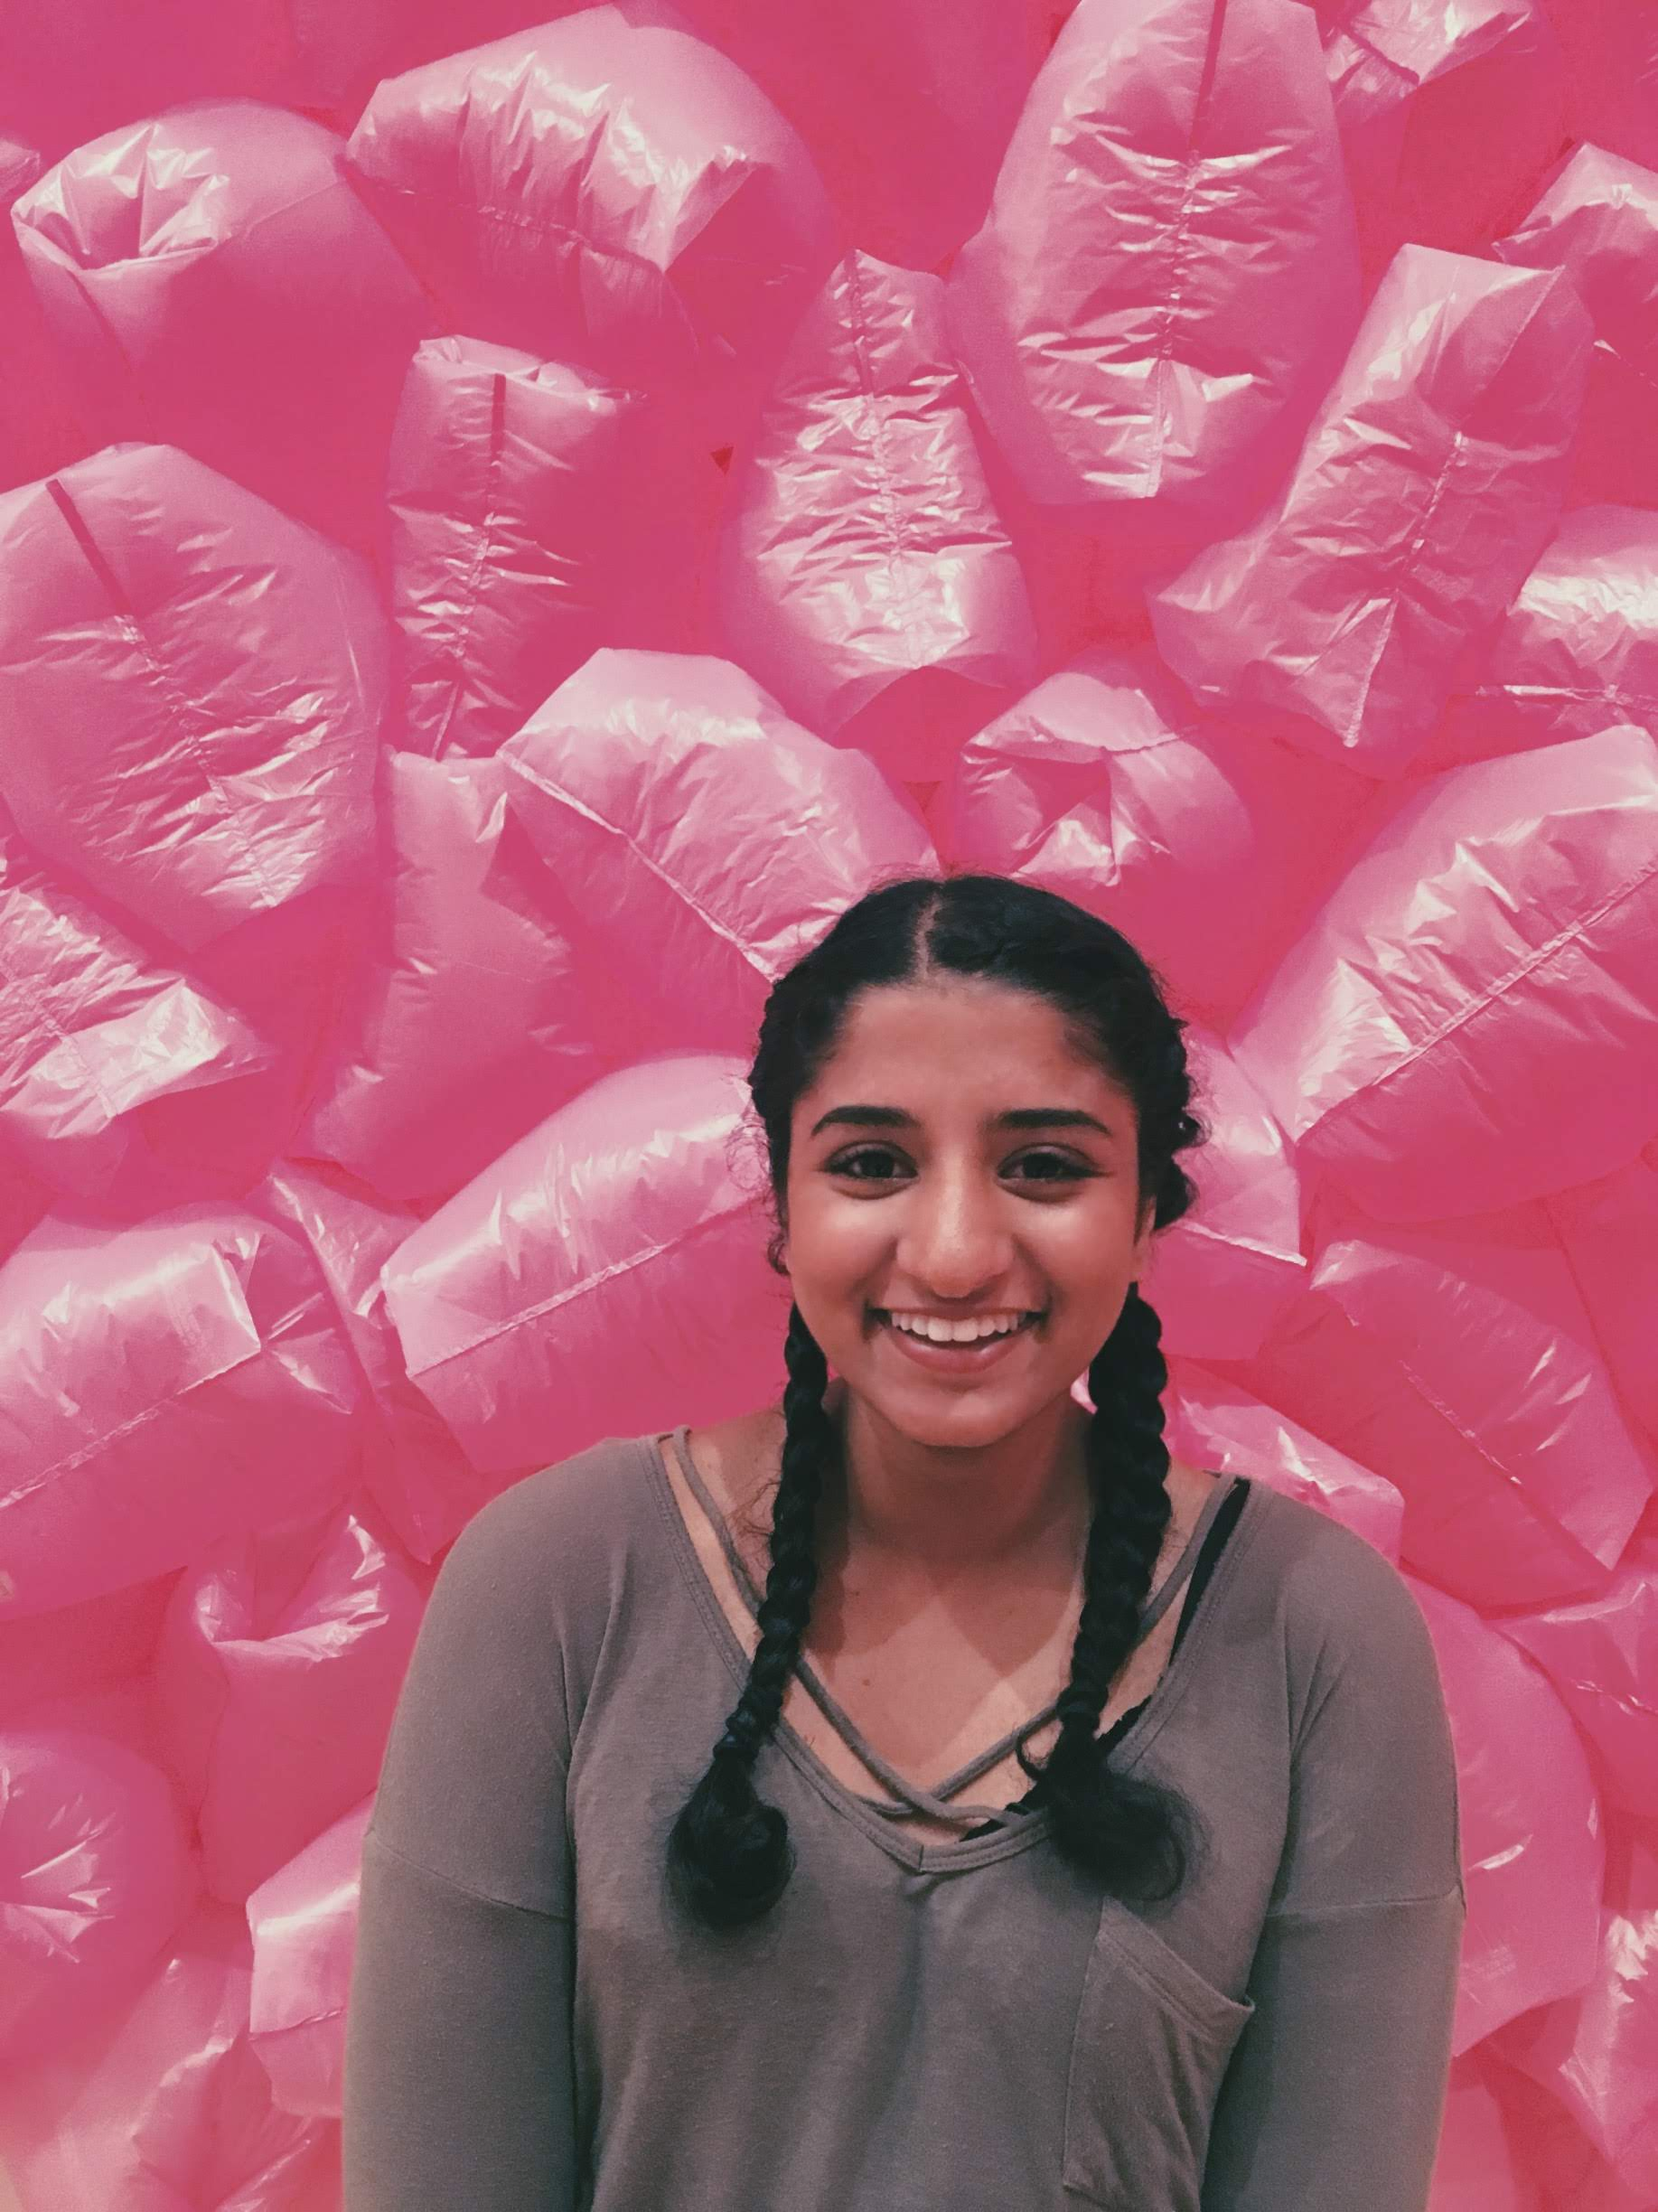 Meena Reddy '20,  Chair  Meena is a junior from Sammamish, WA. In addition to PHSF, she leads sailing trips with Outdoor Pursuits, writes for the Hippocrates Med Review, and loves to ski! Her favorite spot on campus is the Hutch in Gilman.